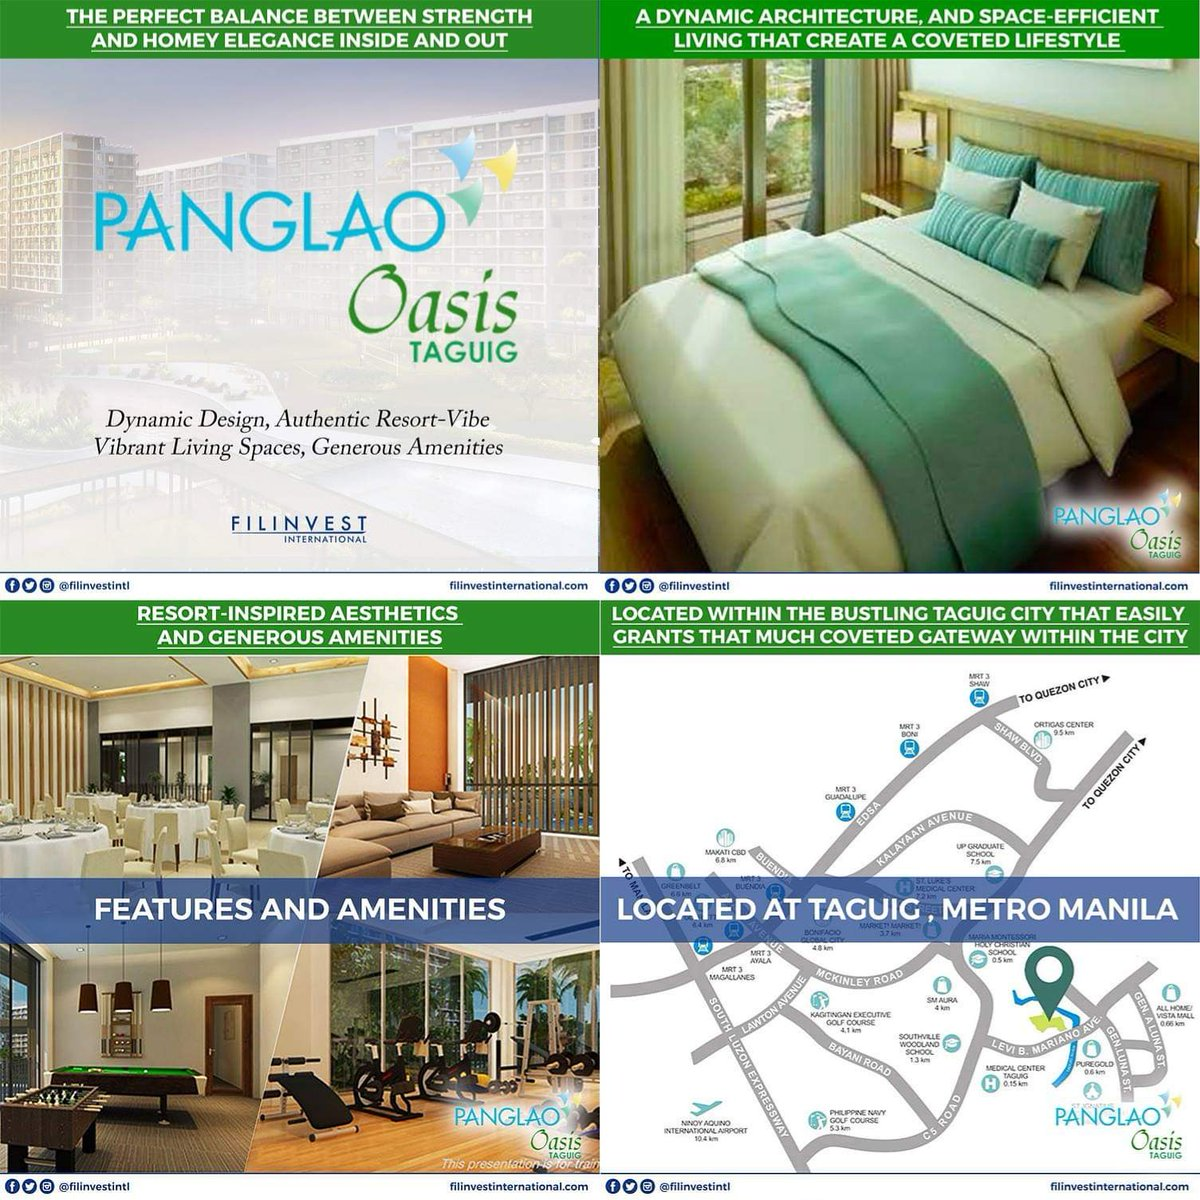 Panglao Oasis is a mid-rise and resort inspired residential community in Taguig City. It provides space-efficient condominium living that is inspired by the essence of nature. A secured community that grants the residents the opportunity to enjoy tranquility and serenity. https://t.co/6HxYrJKag2